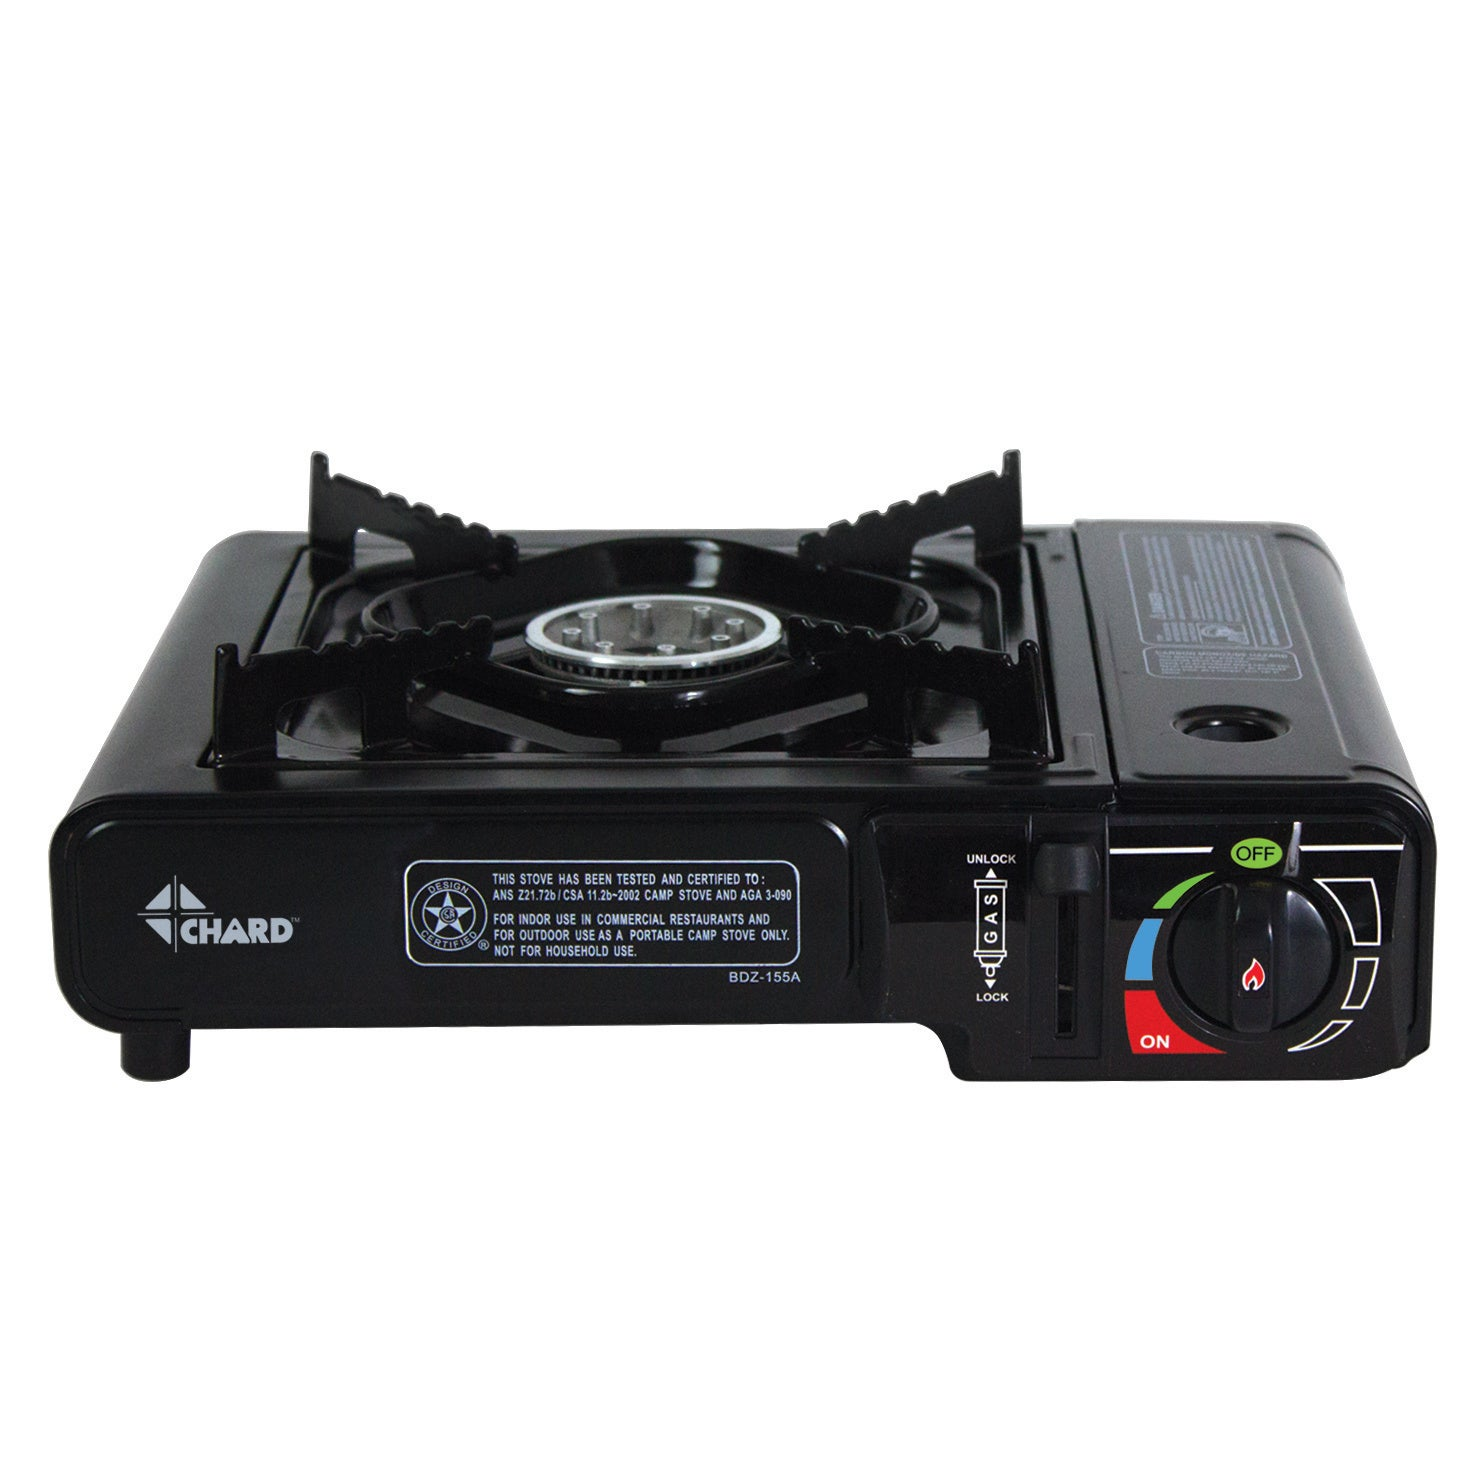 Chard Single Burner Butane Stove (SBBCS85), Black